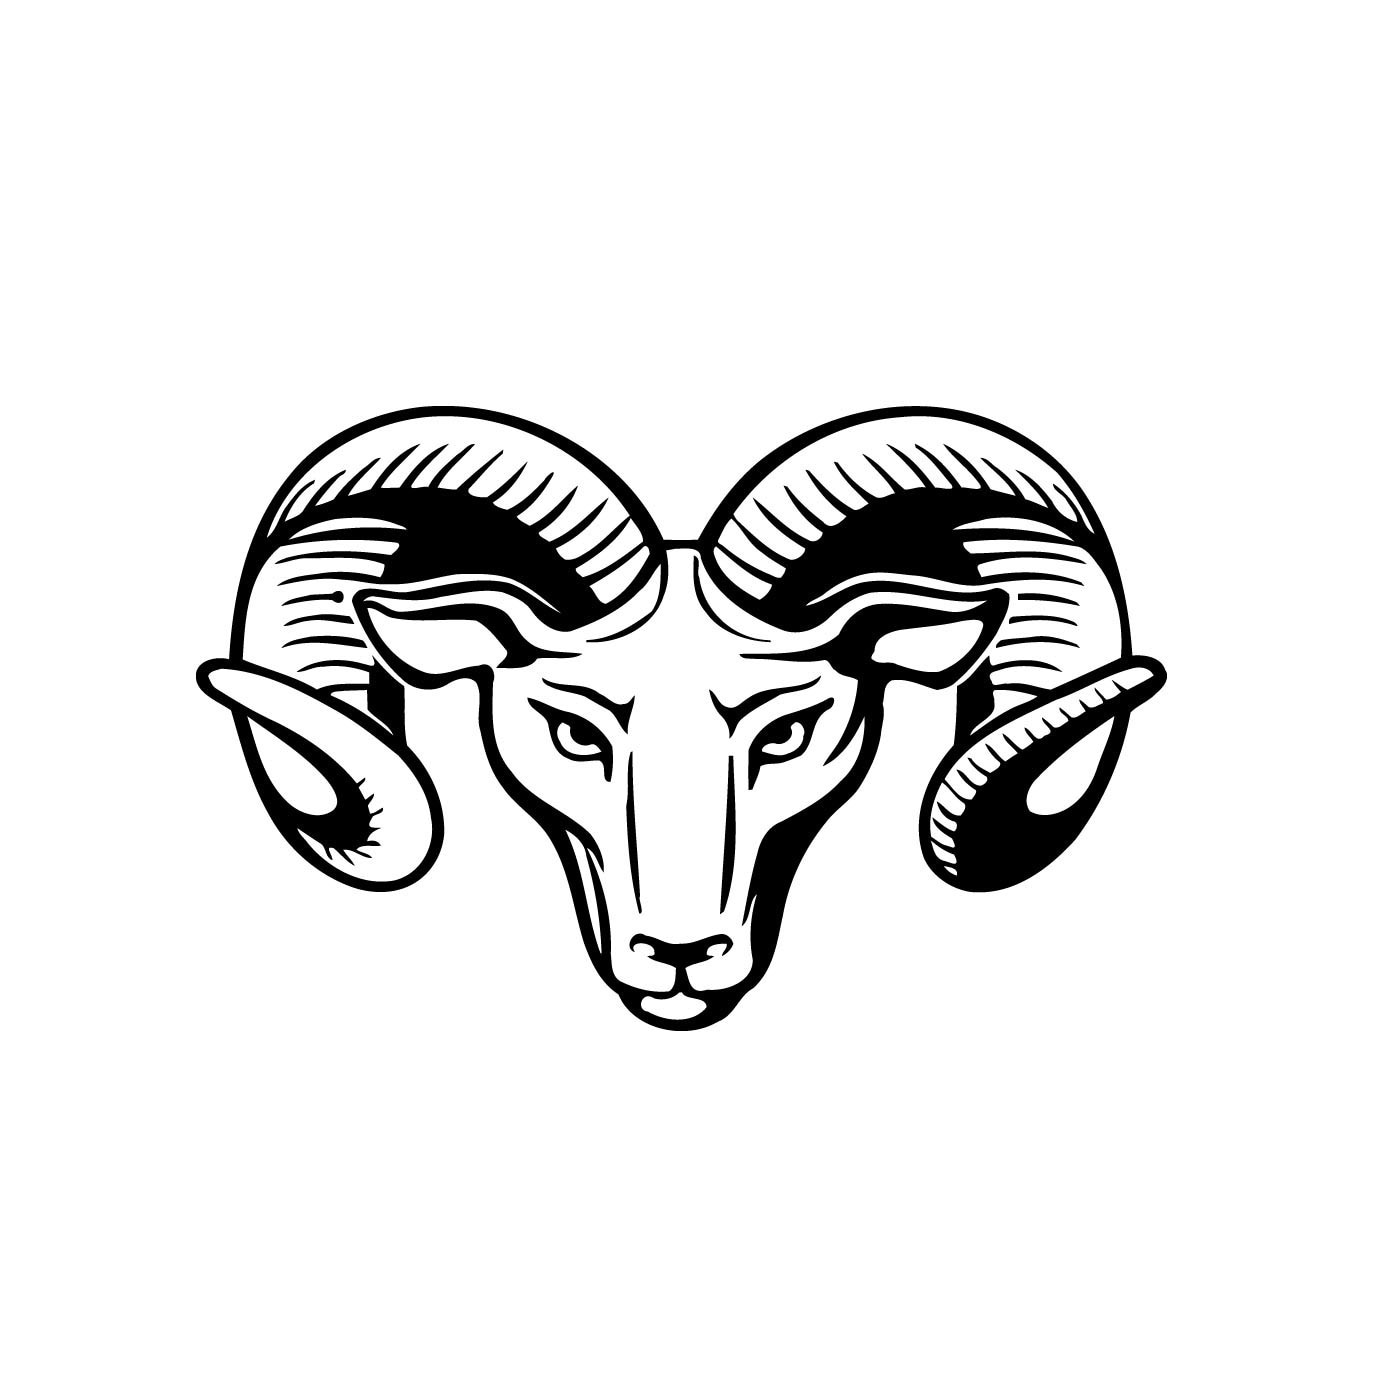 Big Horn Sheep Sticker Decal Home Office Dorm Kitchen Wall Art Tablet Cell CPU